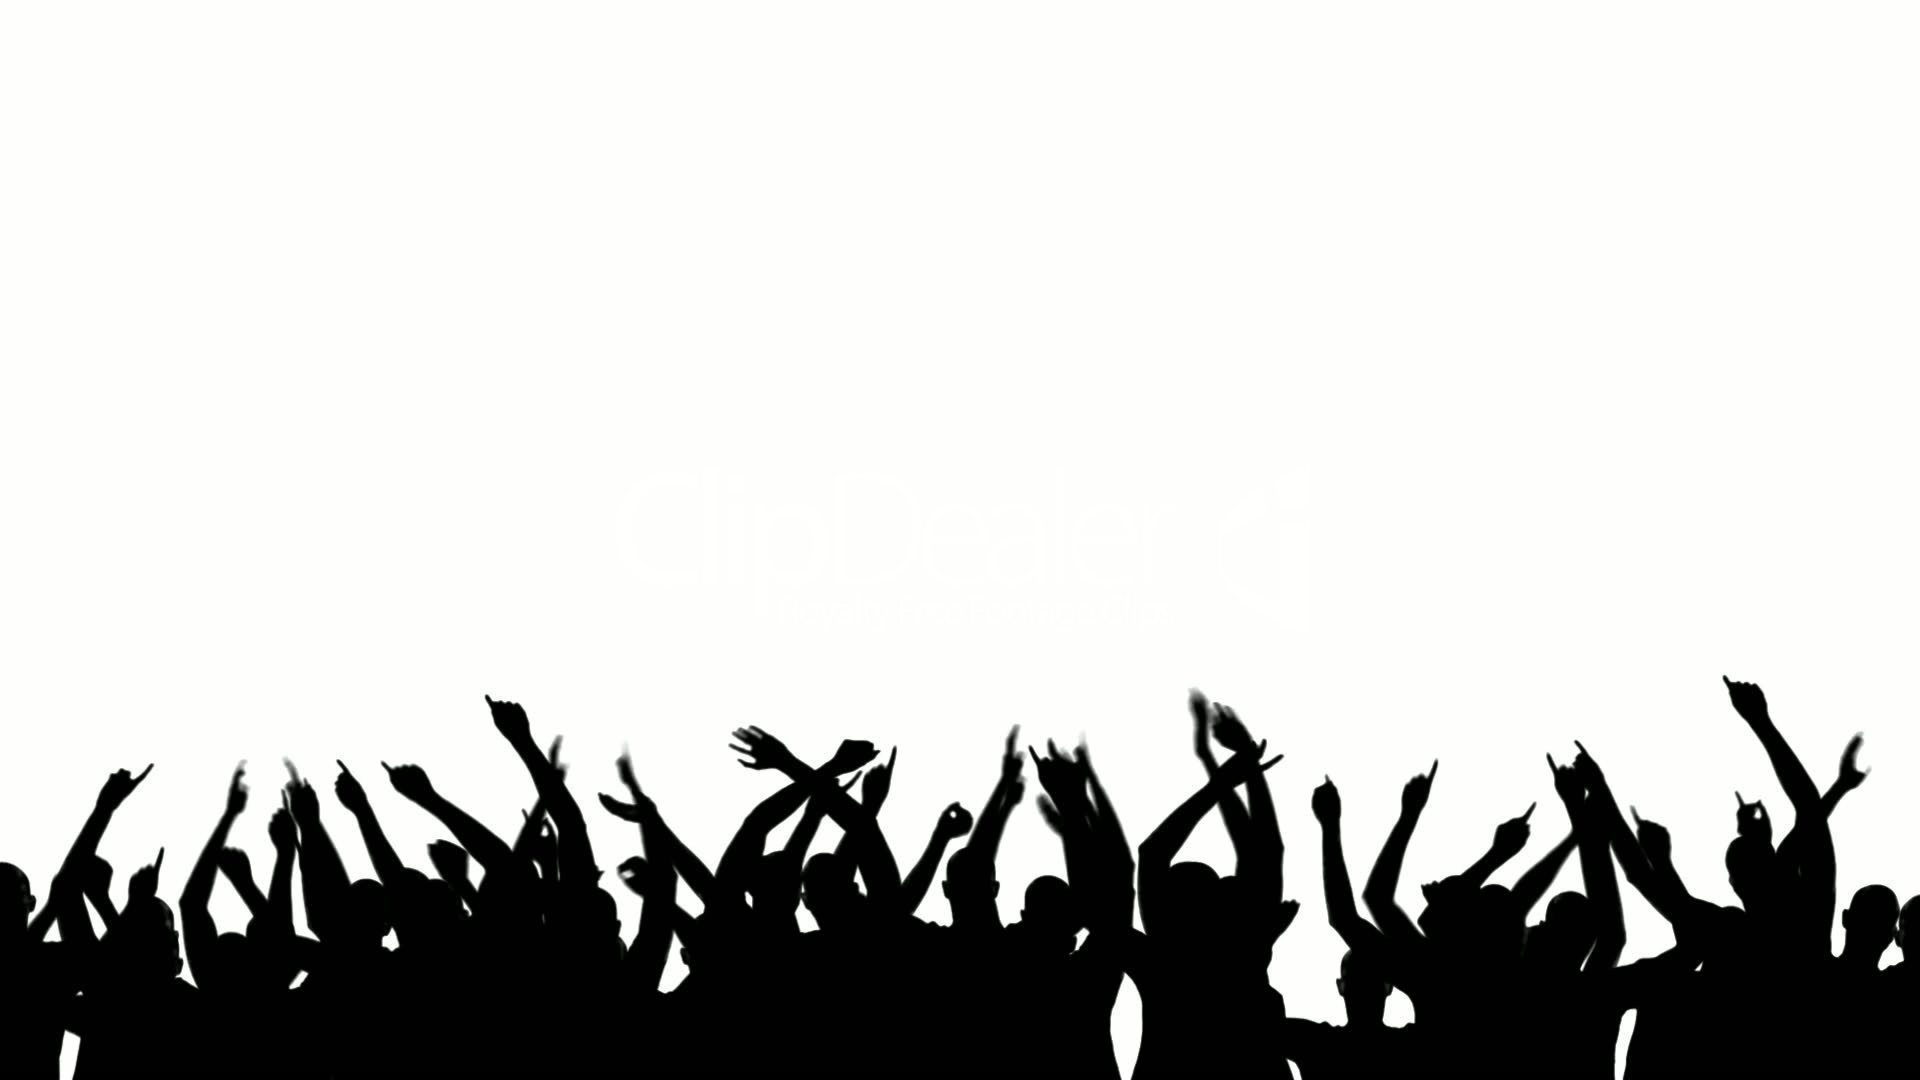 Free Images Black And White People Crowd Statue: Free Download On ClipArtMag